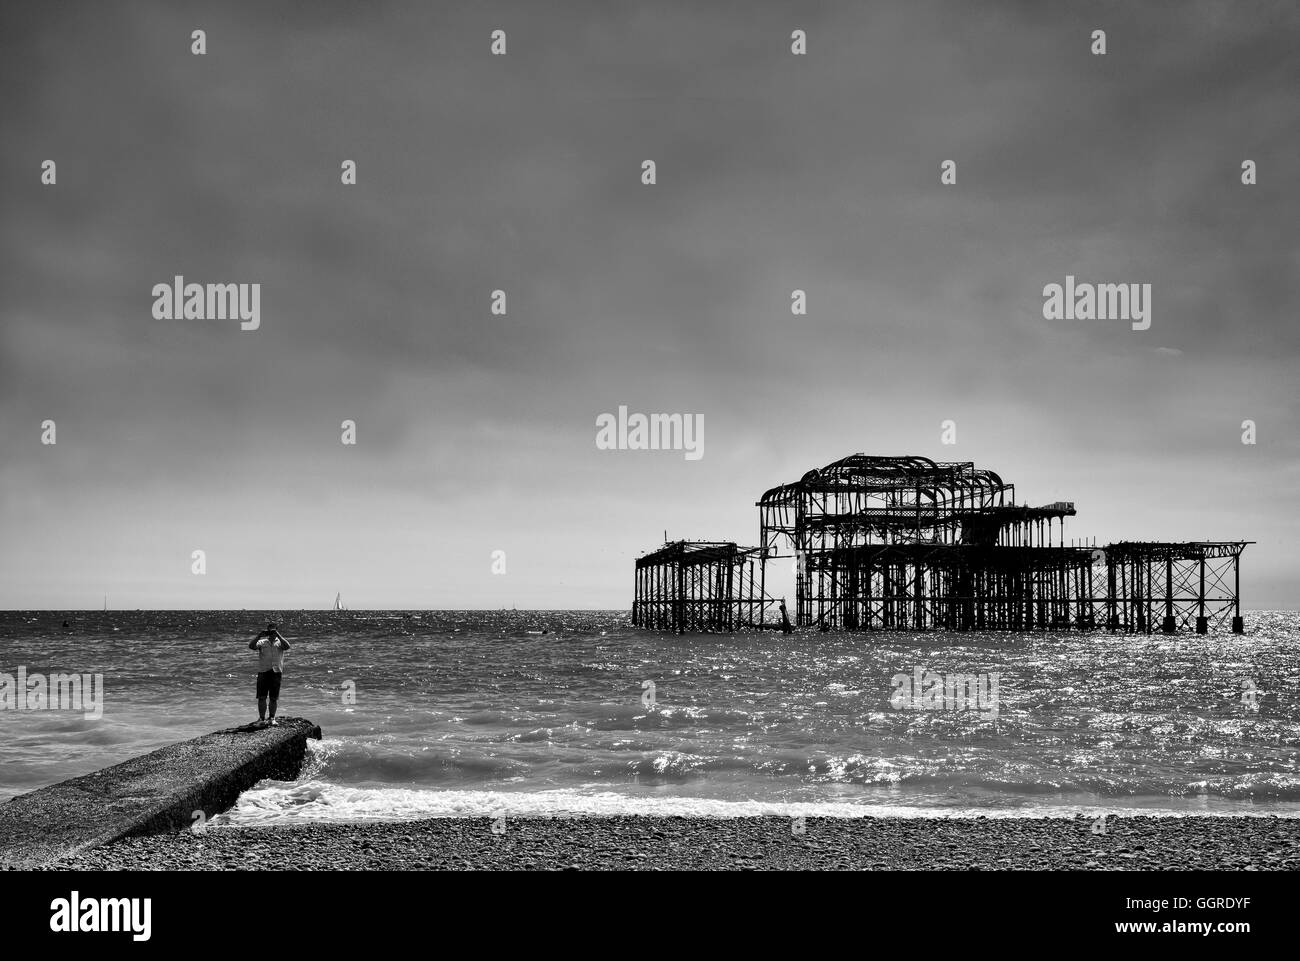 Birghton, West Pier in Black and White - Stock Image